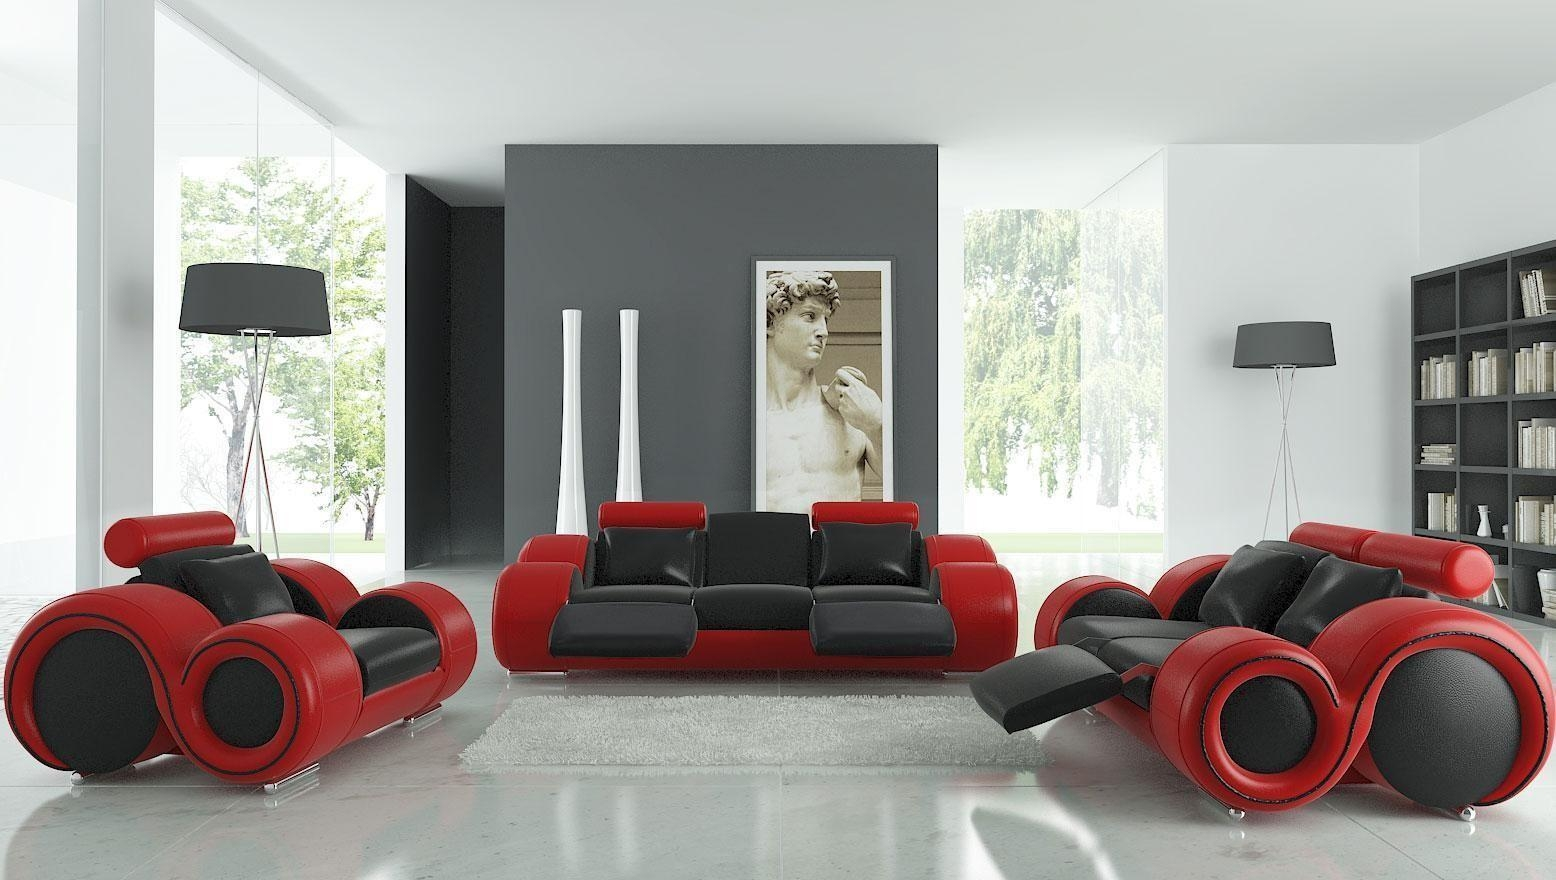 Living Room: Exciting Sofa Set For Sale Sofa Set For Sale Ikea, 5 With Black And Red Sofa Sets (Image 10 of 20)